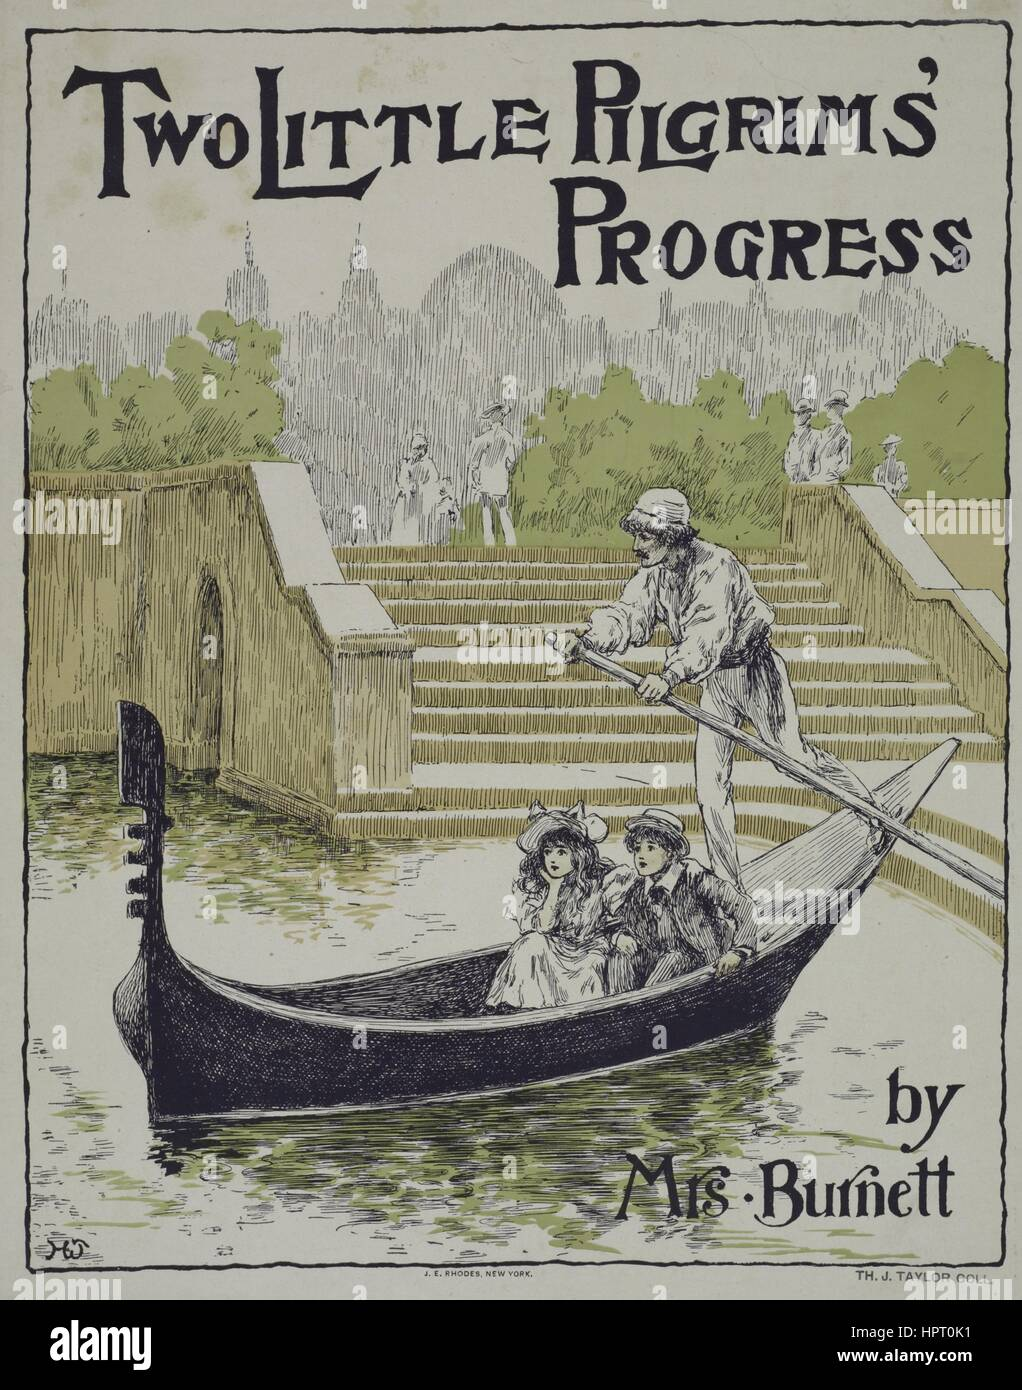 Poster advertisement for a book titled Two Little Pilgrims' Progress by Mrs Burnett which displays two people - Stock Image